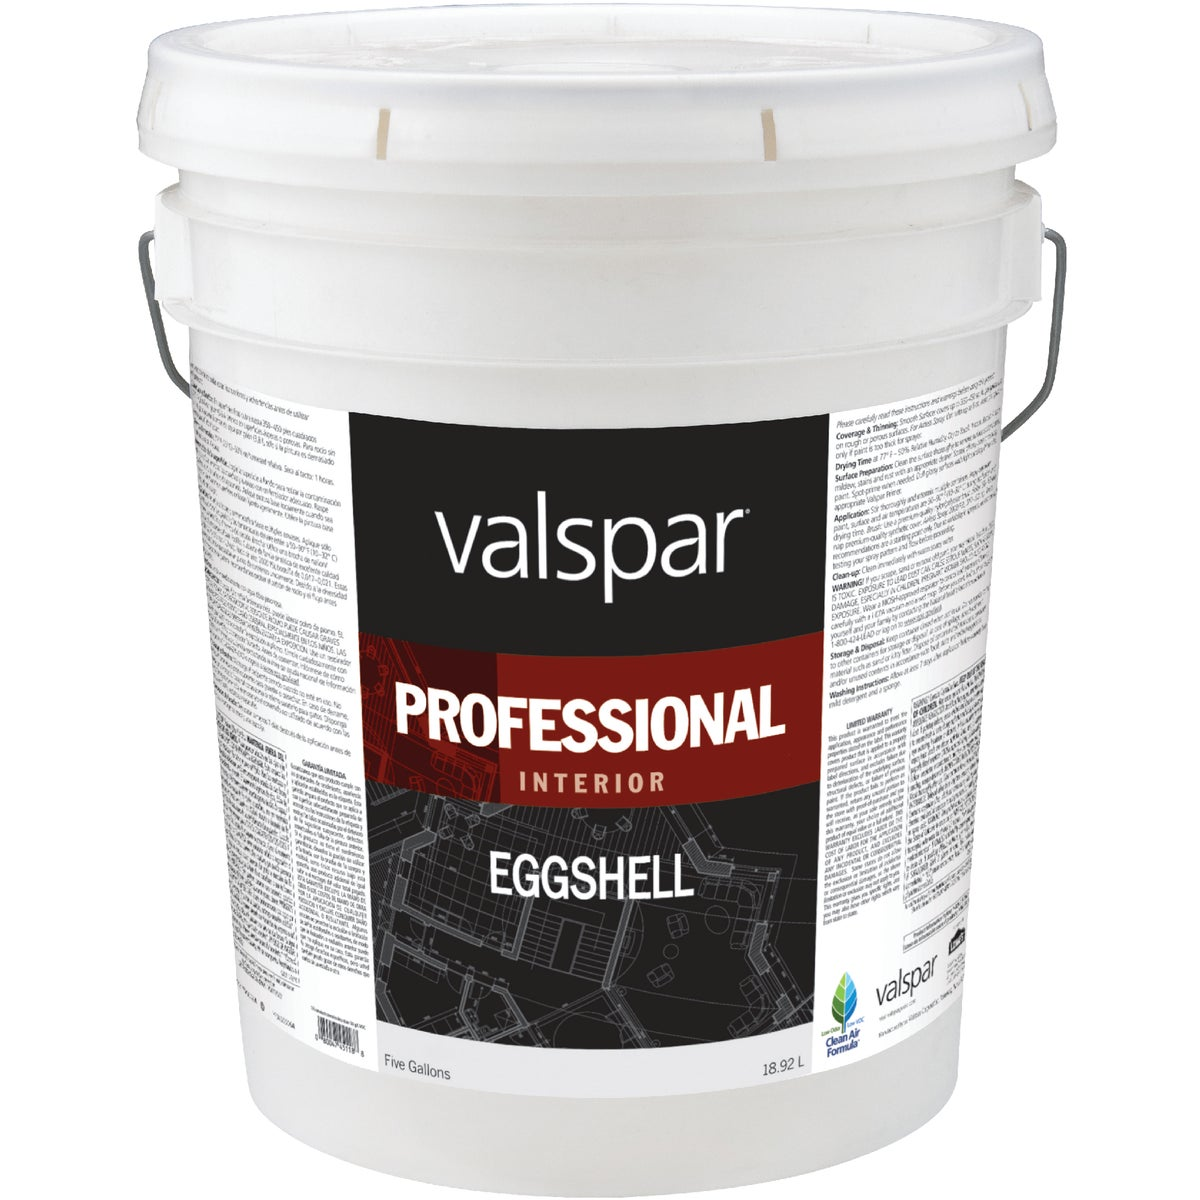 INT EGG LIGHT BASE PAINT - 045.0011811.008 by Valspar Corp